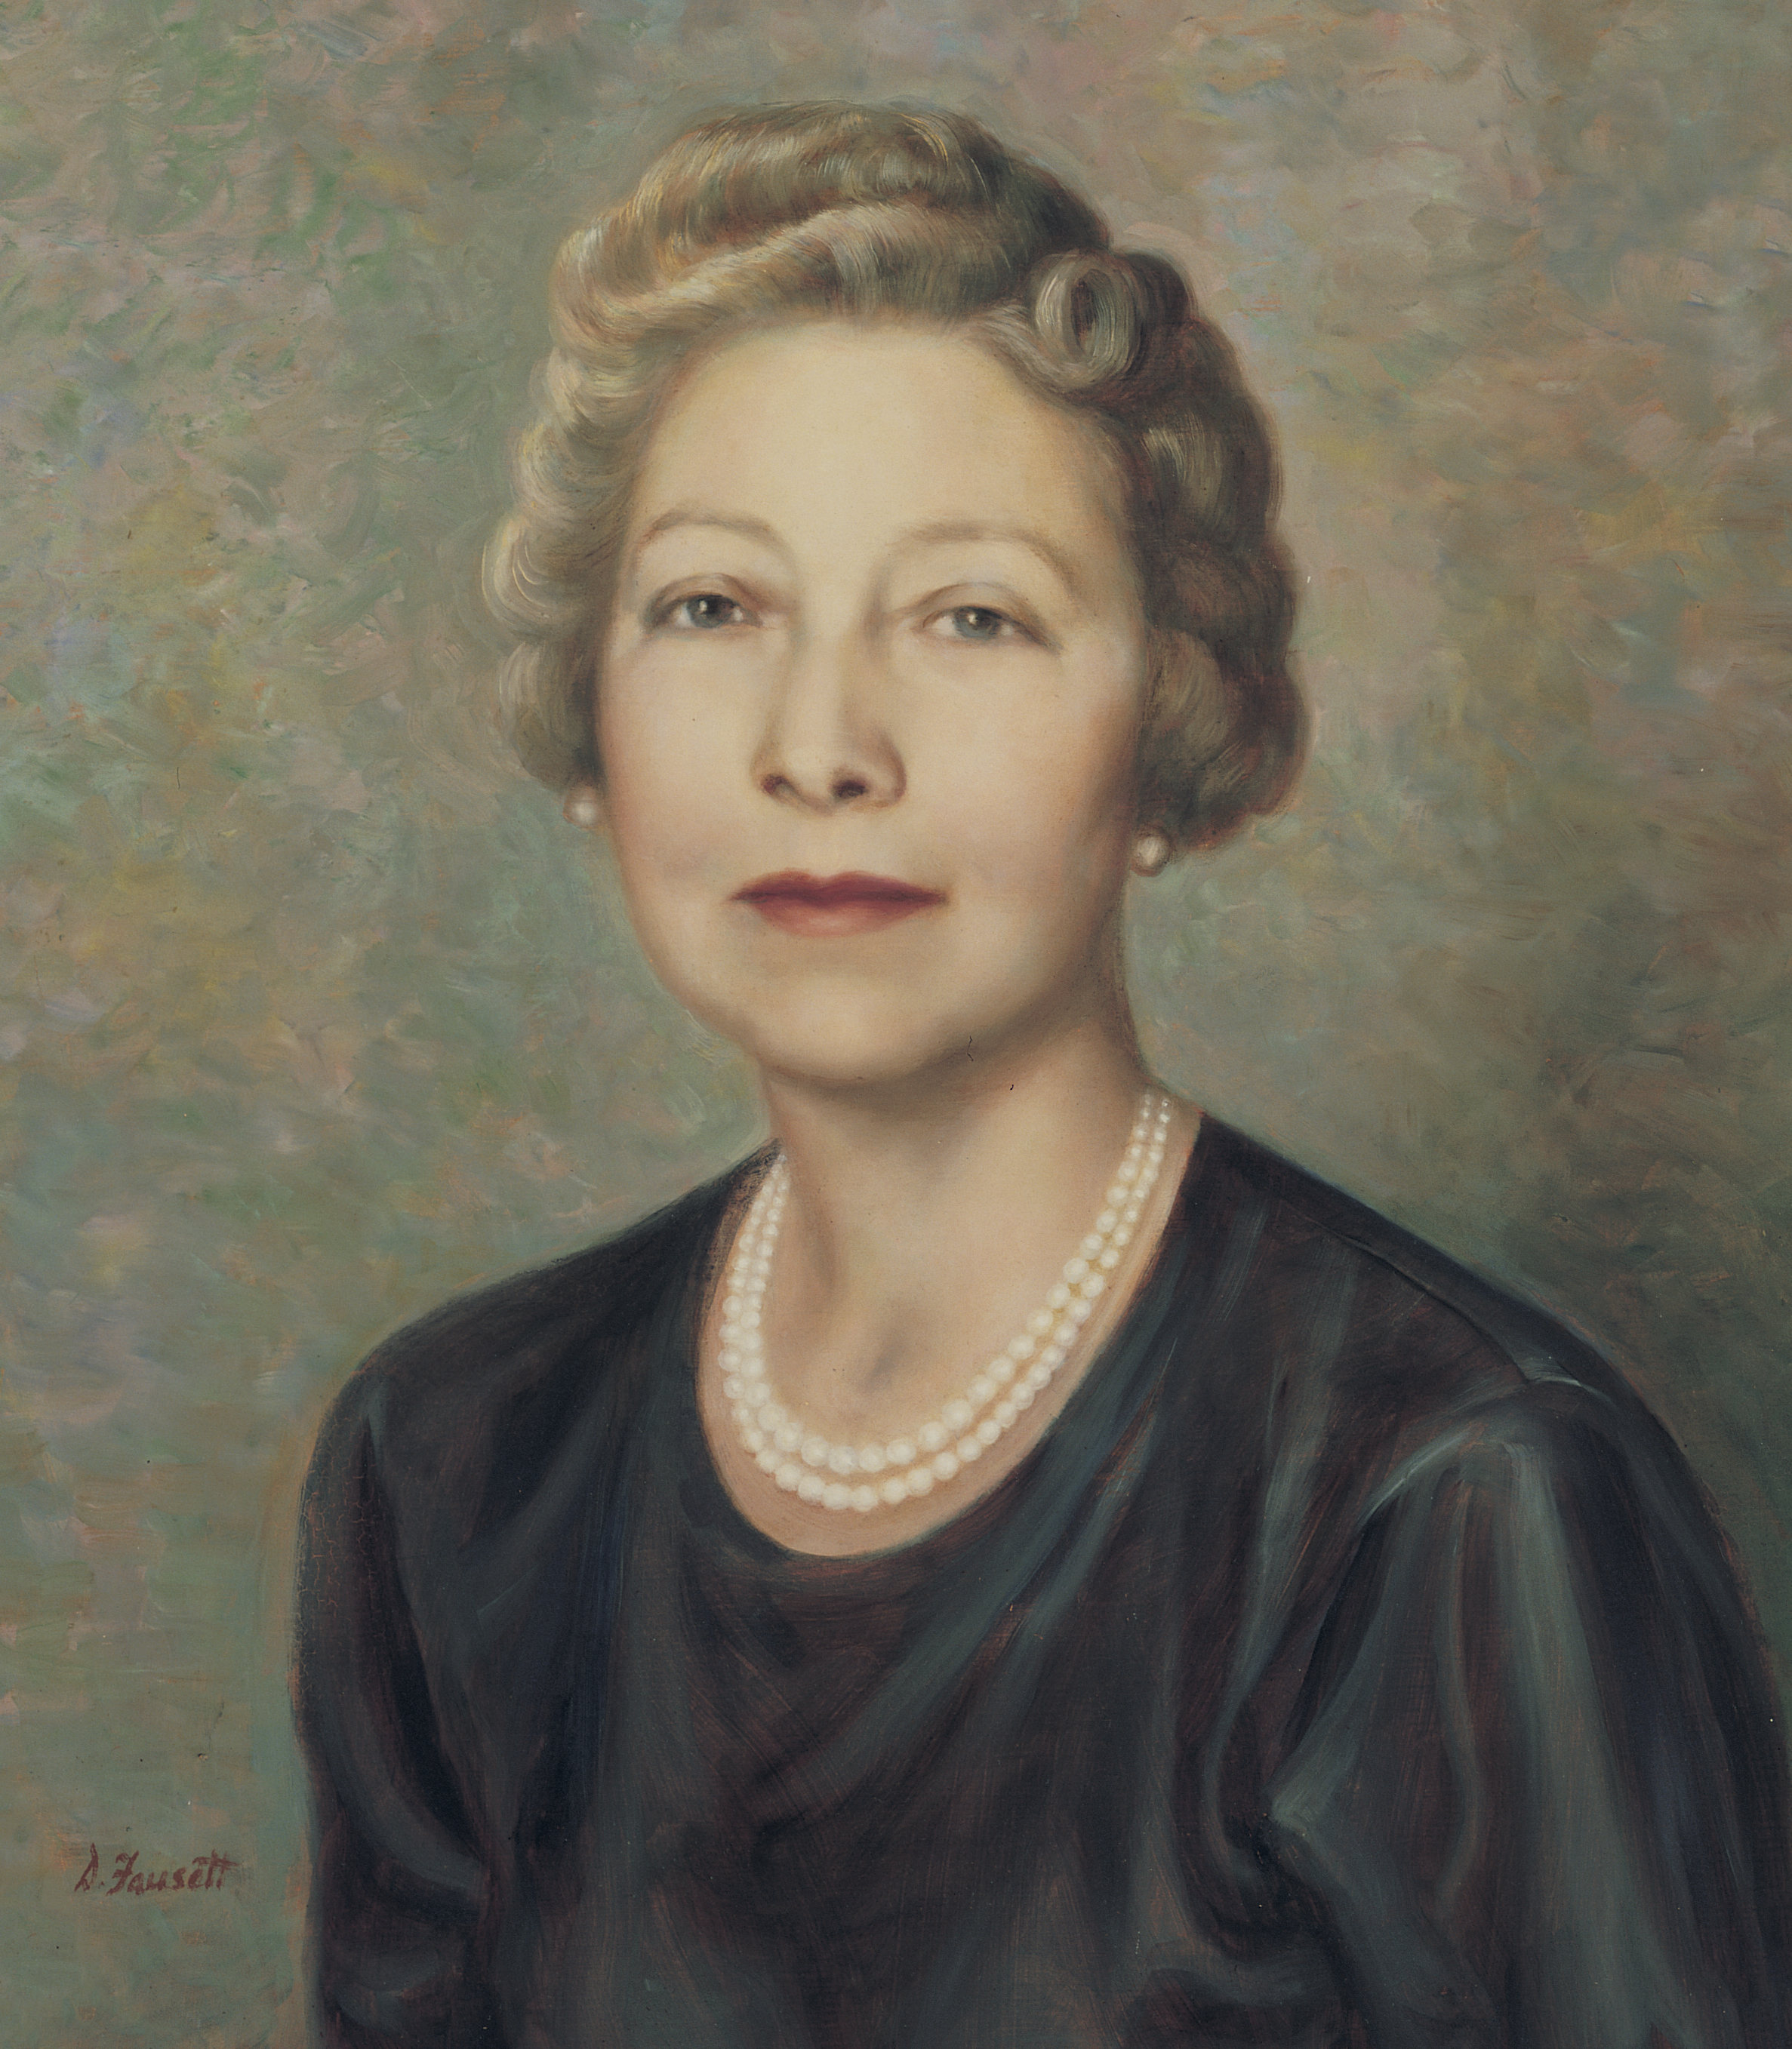 A portrait of Adele Cannon Howells, who was the fourth Primary general president from 1943 to 1951; painted by Dean Fausett.